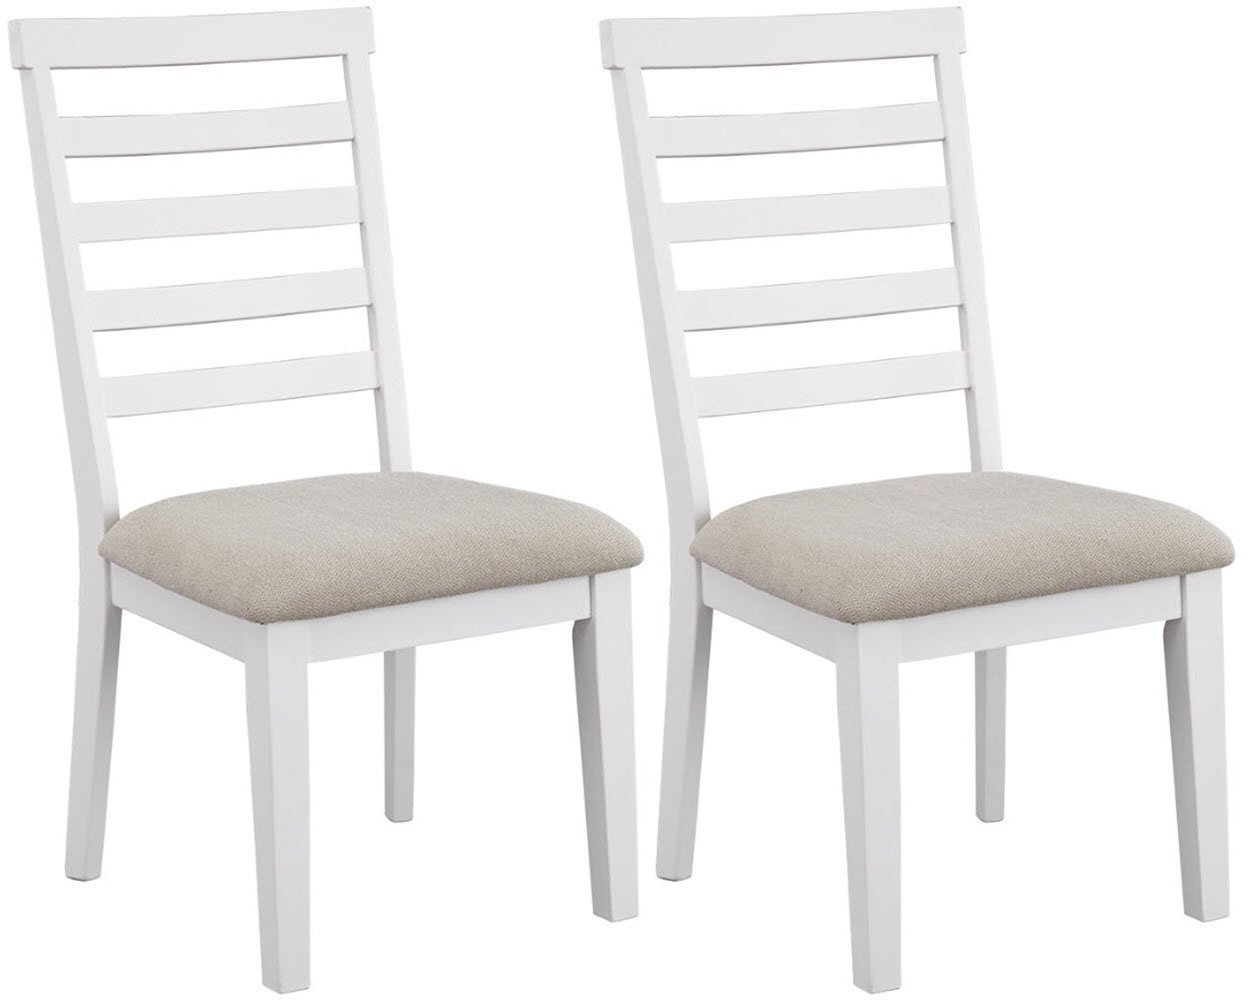 Signature Design by Ashley D632-01 Gardomi Dining-Chair White/Light Brown